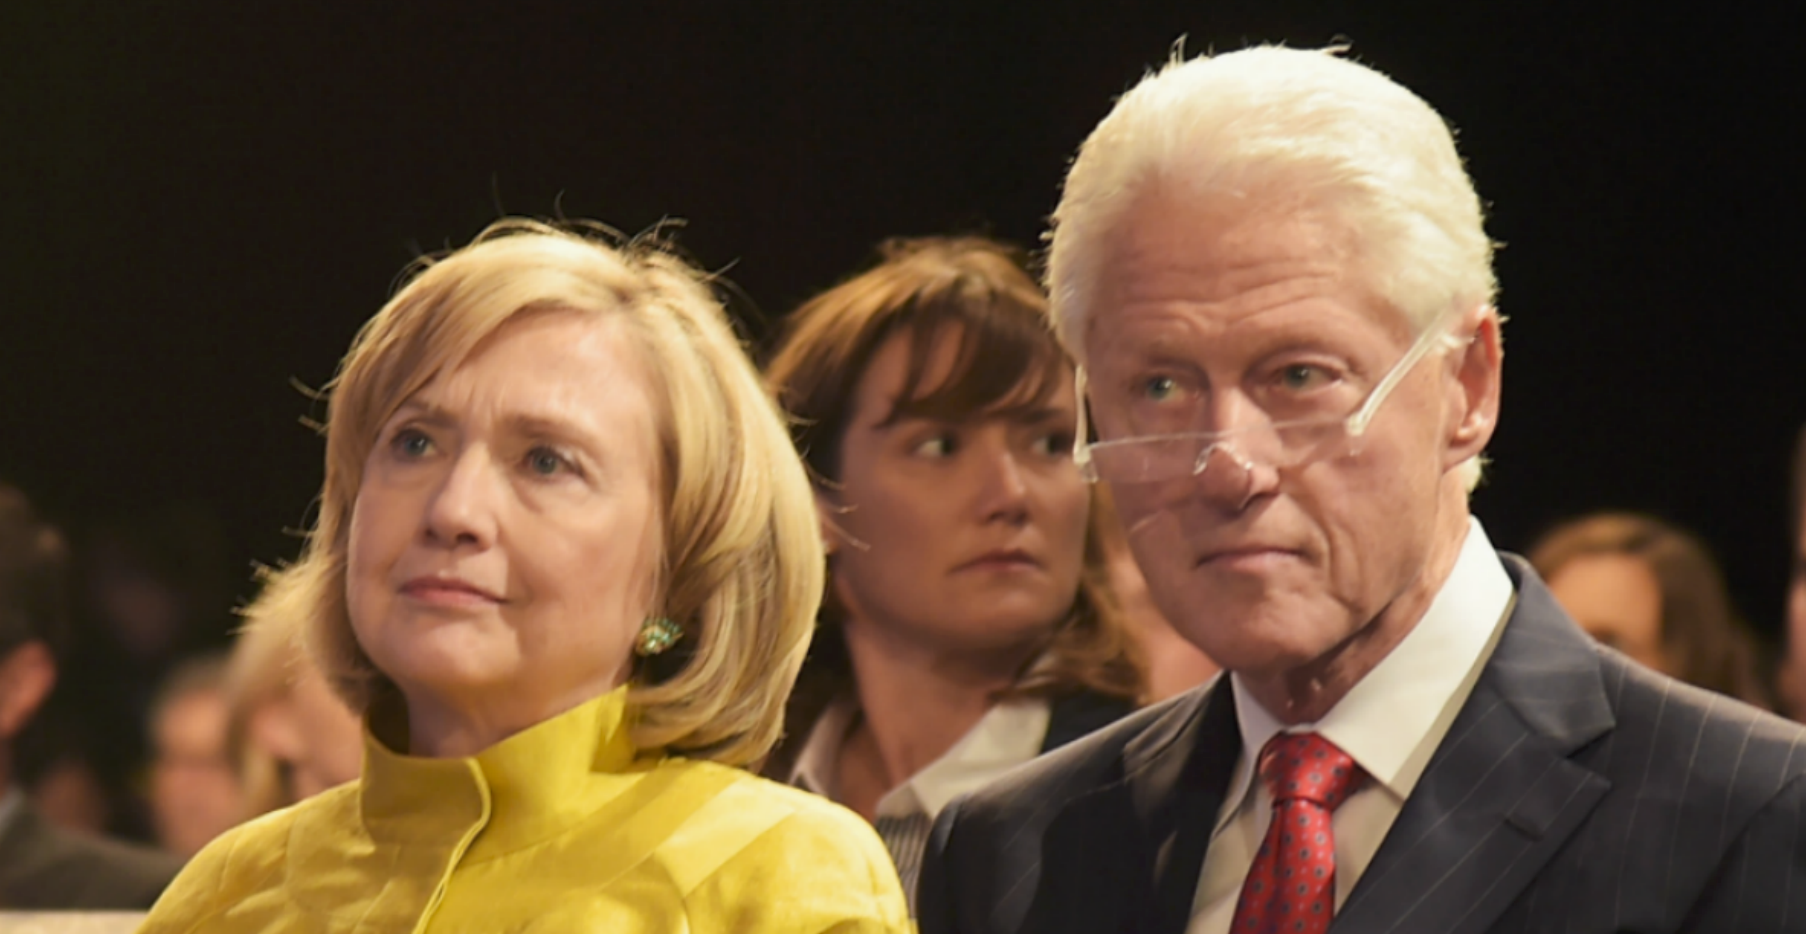 Clinton Chappaqua House Firefighters Respond To Fire At Bill And Hillary Clinton S